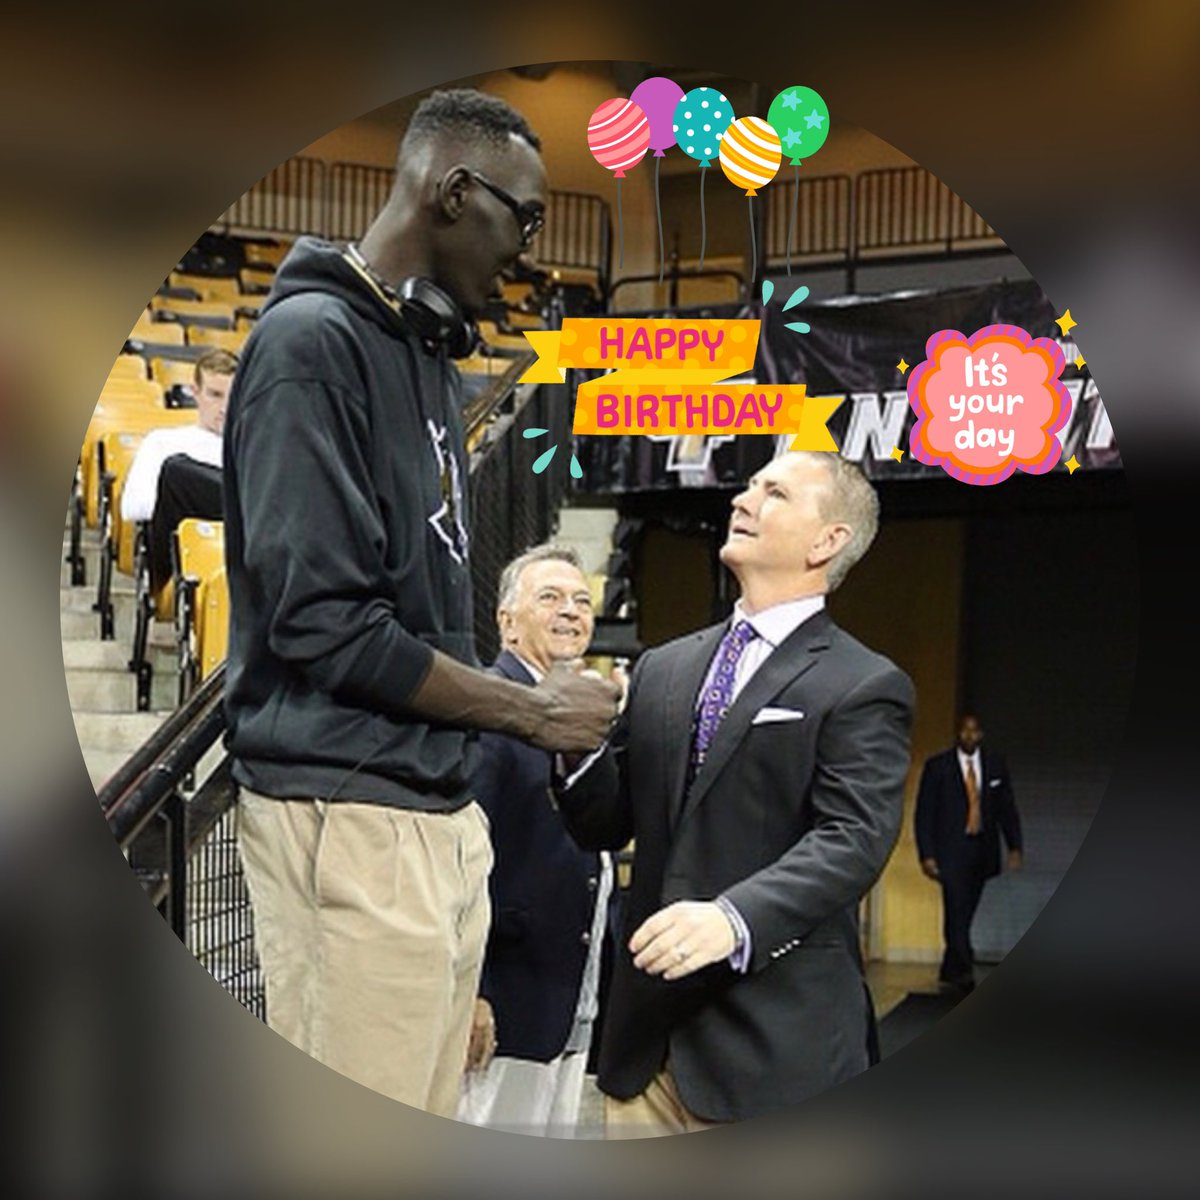 Happy Birthday @tackofall99 Hope your Day is Special Just like You! #Family #GlobalLeader